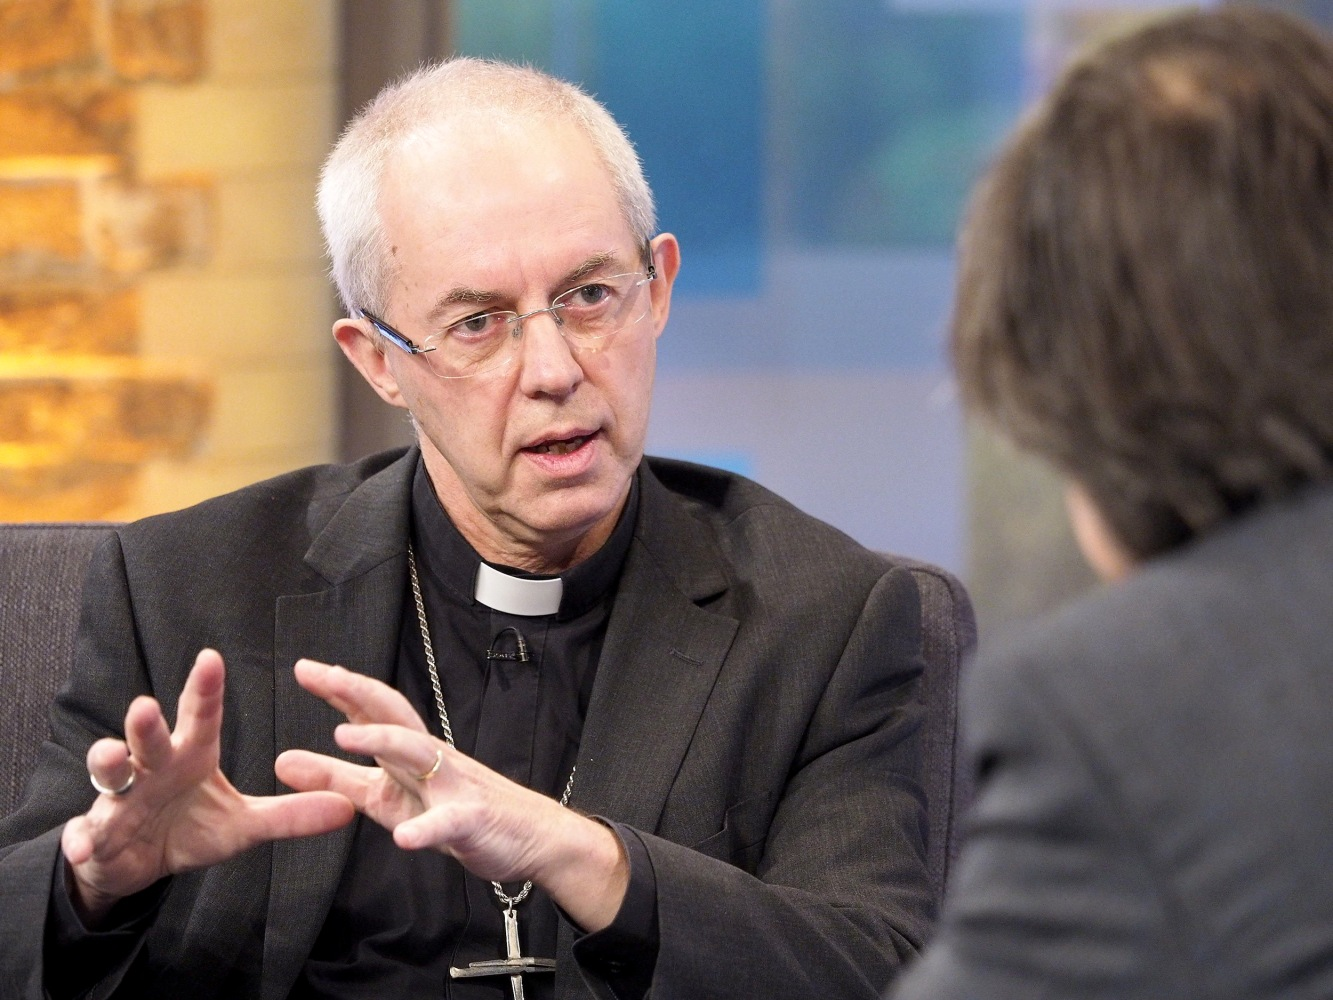 Archbishop of Canterbury baffled by Christians who back Trump